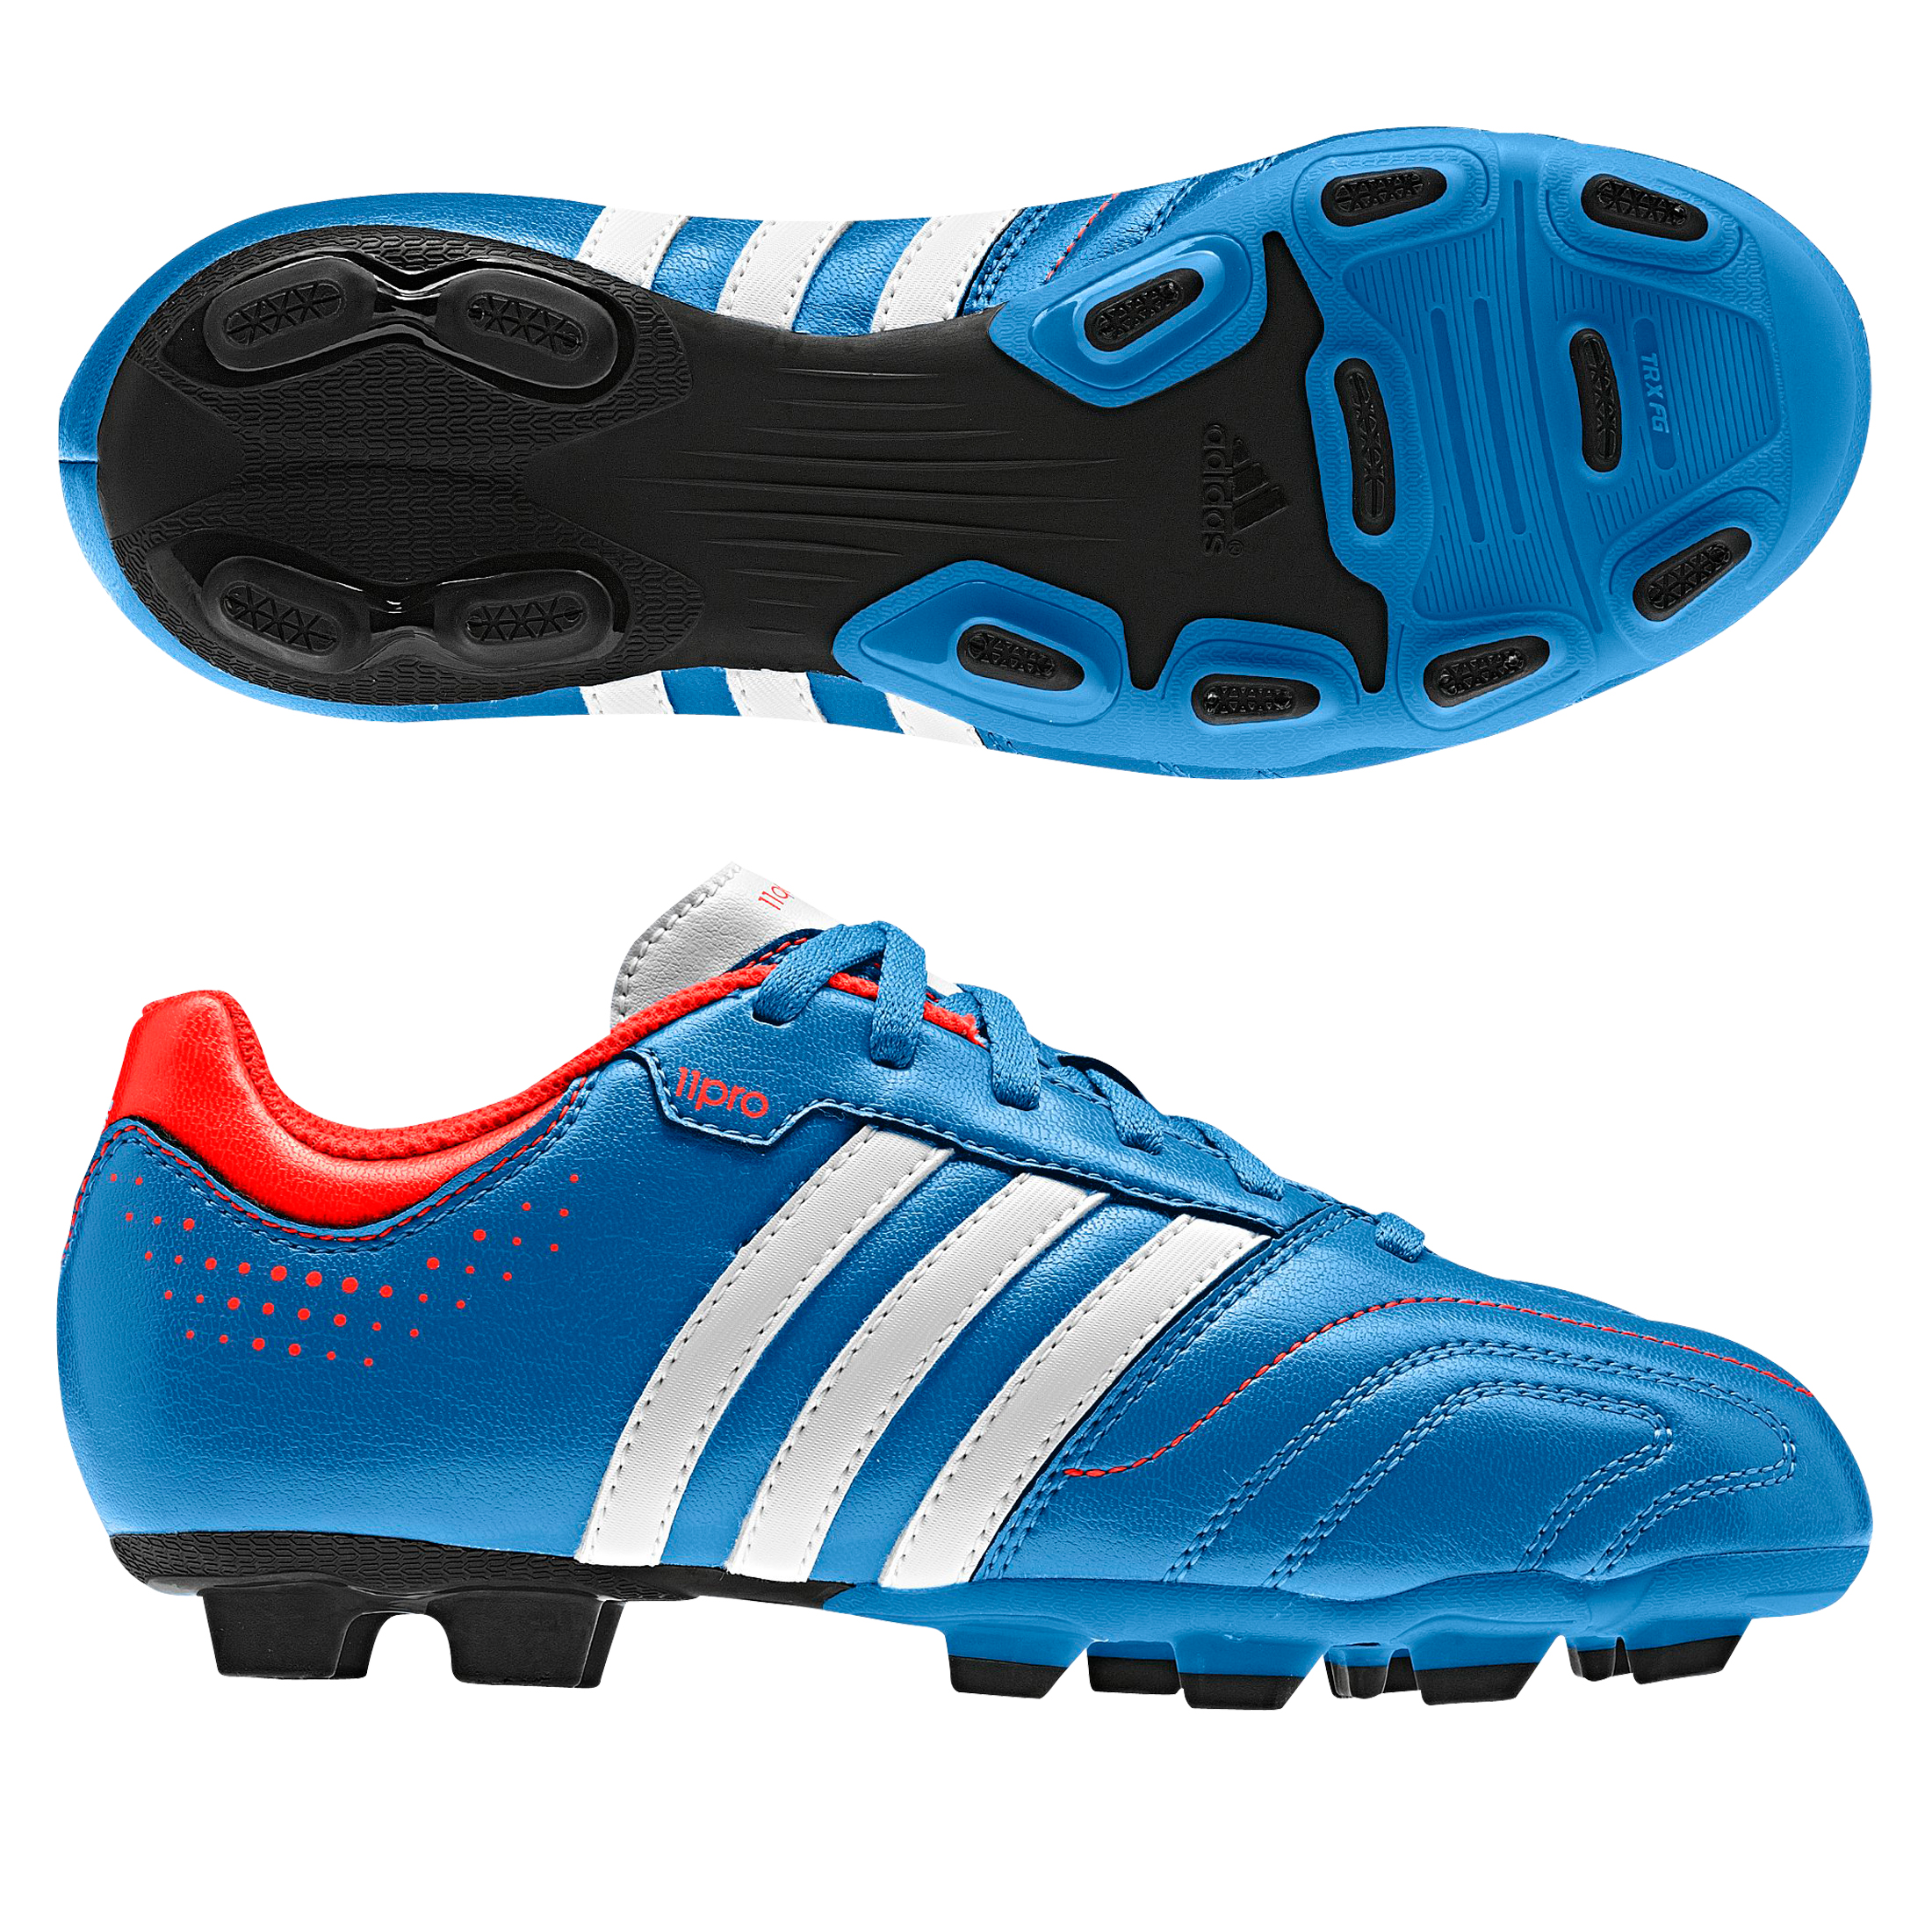 Adidas 11Questra TRX Firm Ground Football Boots - Bright Blue/Running White/Infrared - Kids